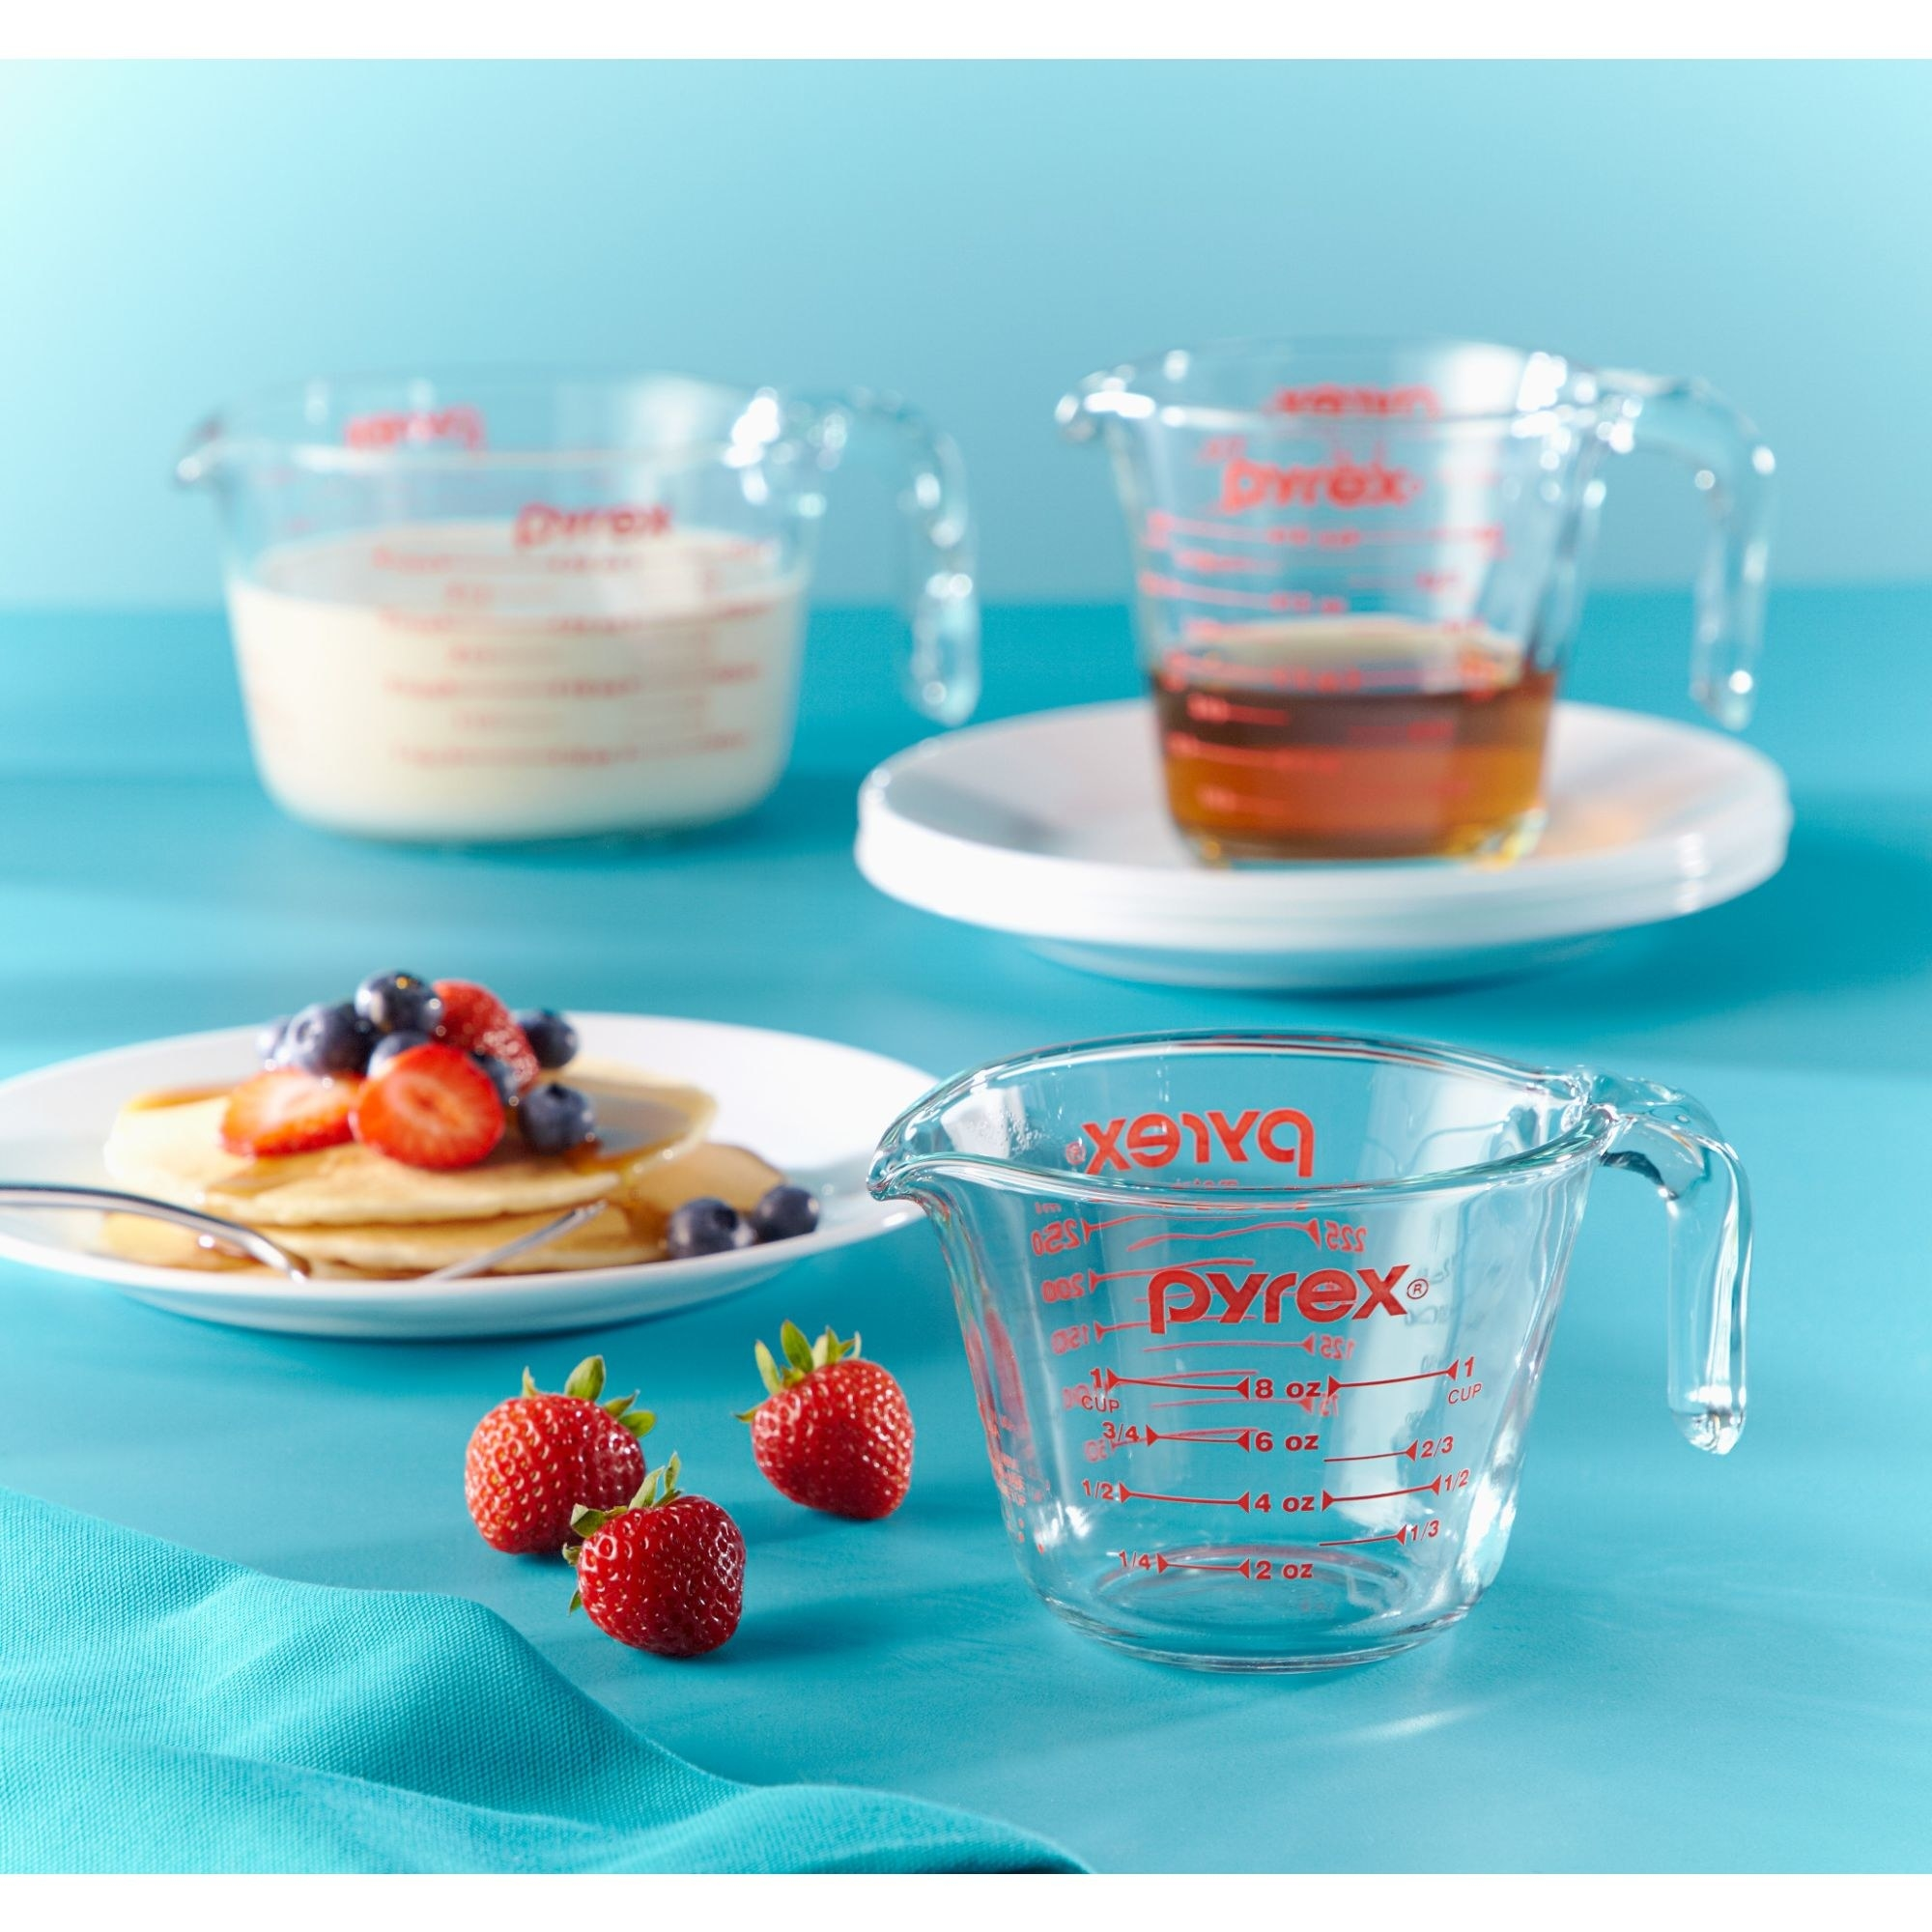 three pyrex measuring cups on a blue background